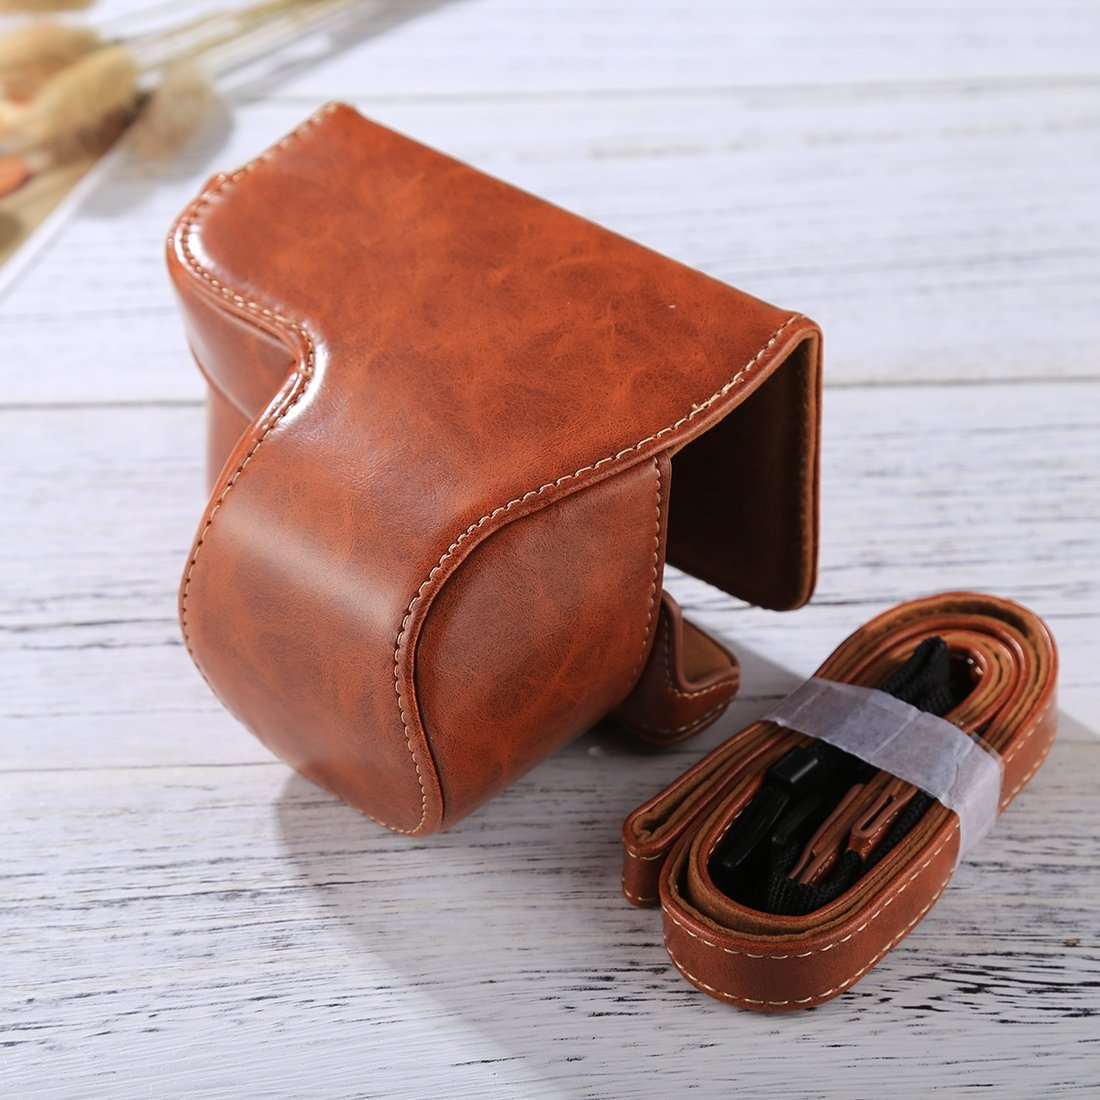 Camera Cases Black Color : Brown Camera Leather Full Body Camera PU Leather Case Bag with Strap for Sony A6300